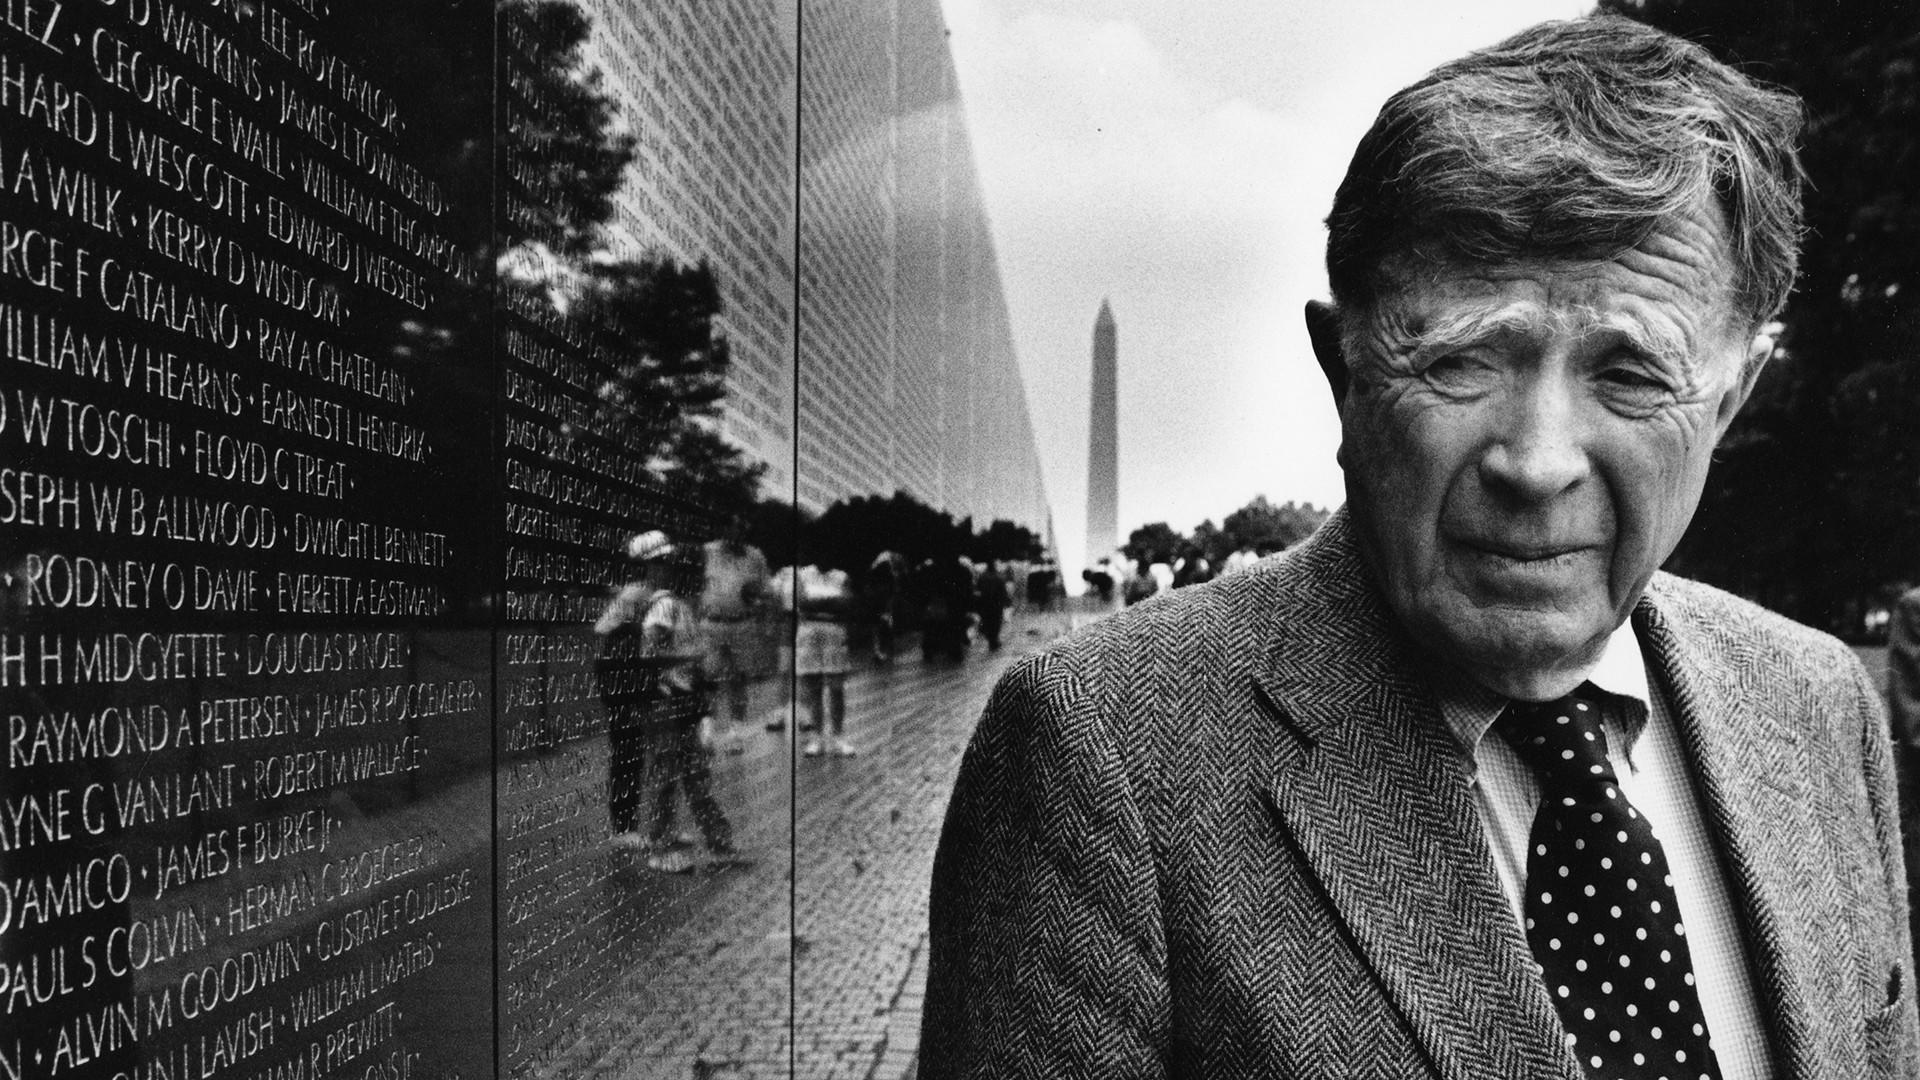 Historian had major impact on architecture and cities, including Chicago